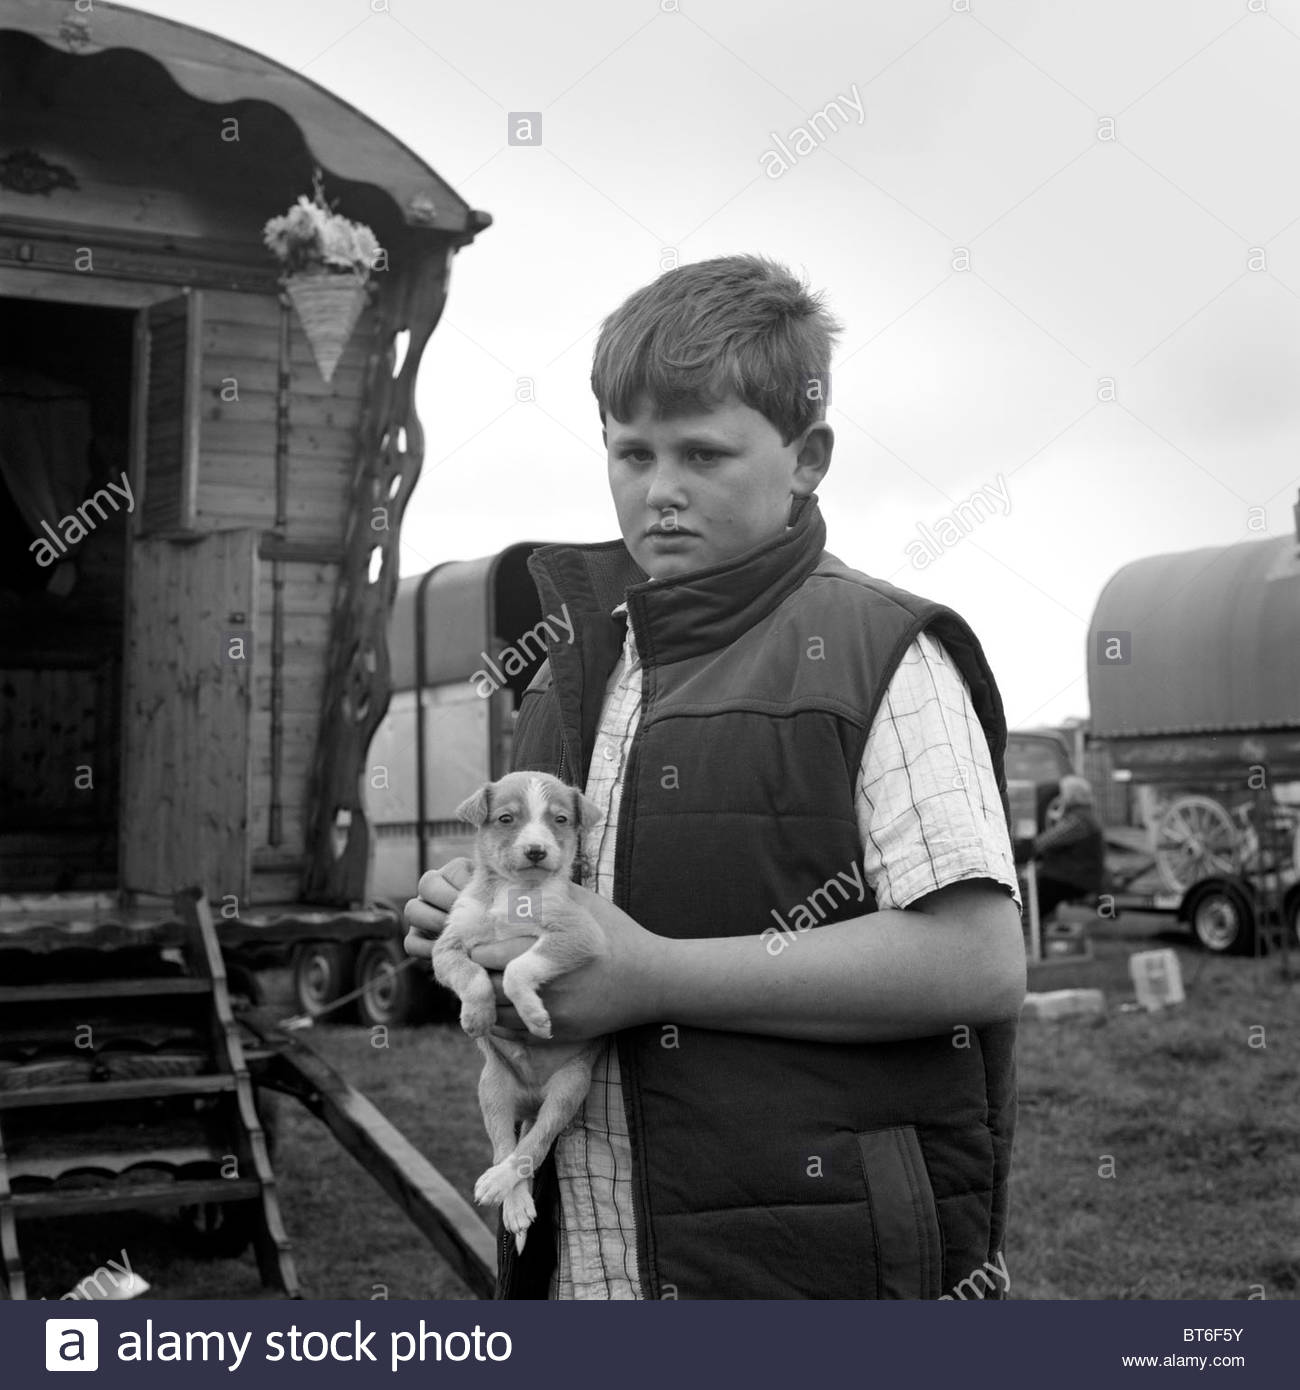 Young lad with a puppy at the Stow-on-the-Wold horse fair, Gloucestershire, UK. - Stock Image